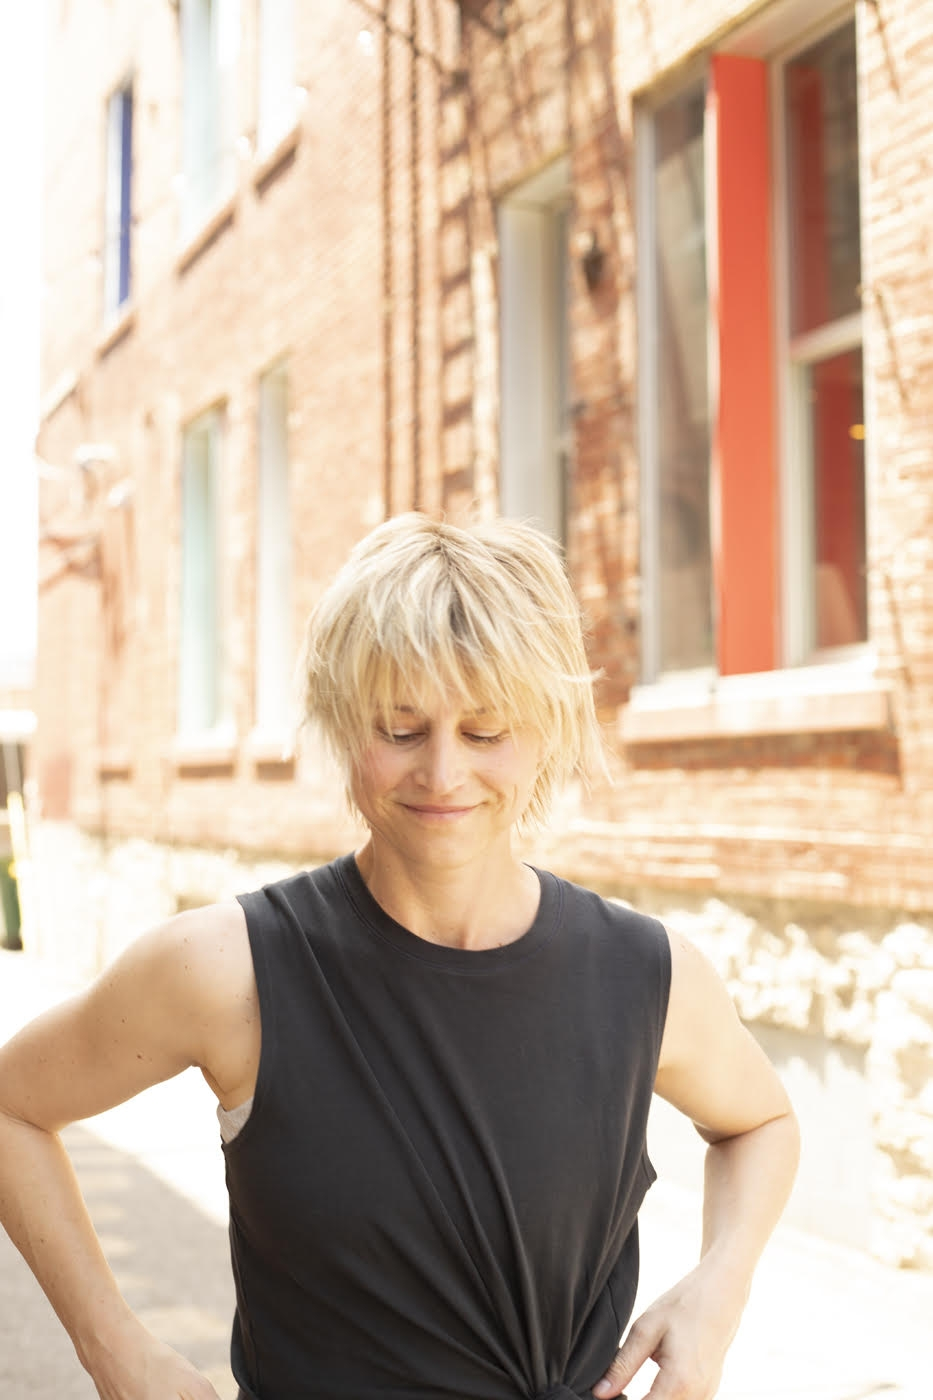 Sarah Kucera - Sarah Kucera is founder of Sage, a healing arts center in the Crossroads. She's a chiropractor, Ayurvedic practitioner, yoga teacher and budding author — her first book will be published in spring 2019! That's the making of a busy lady, but she loves her down time which usually involves a Marvel movie and cuddles with her cat.